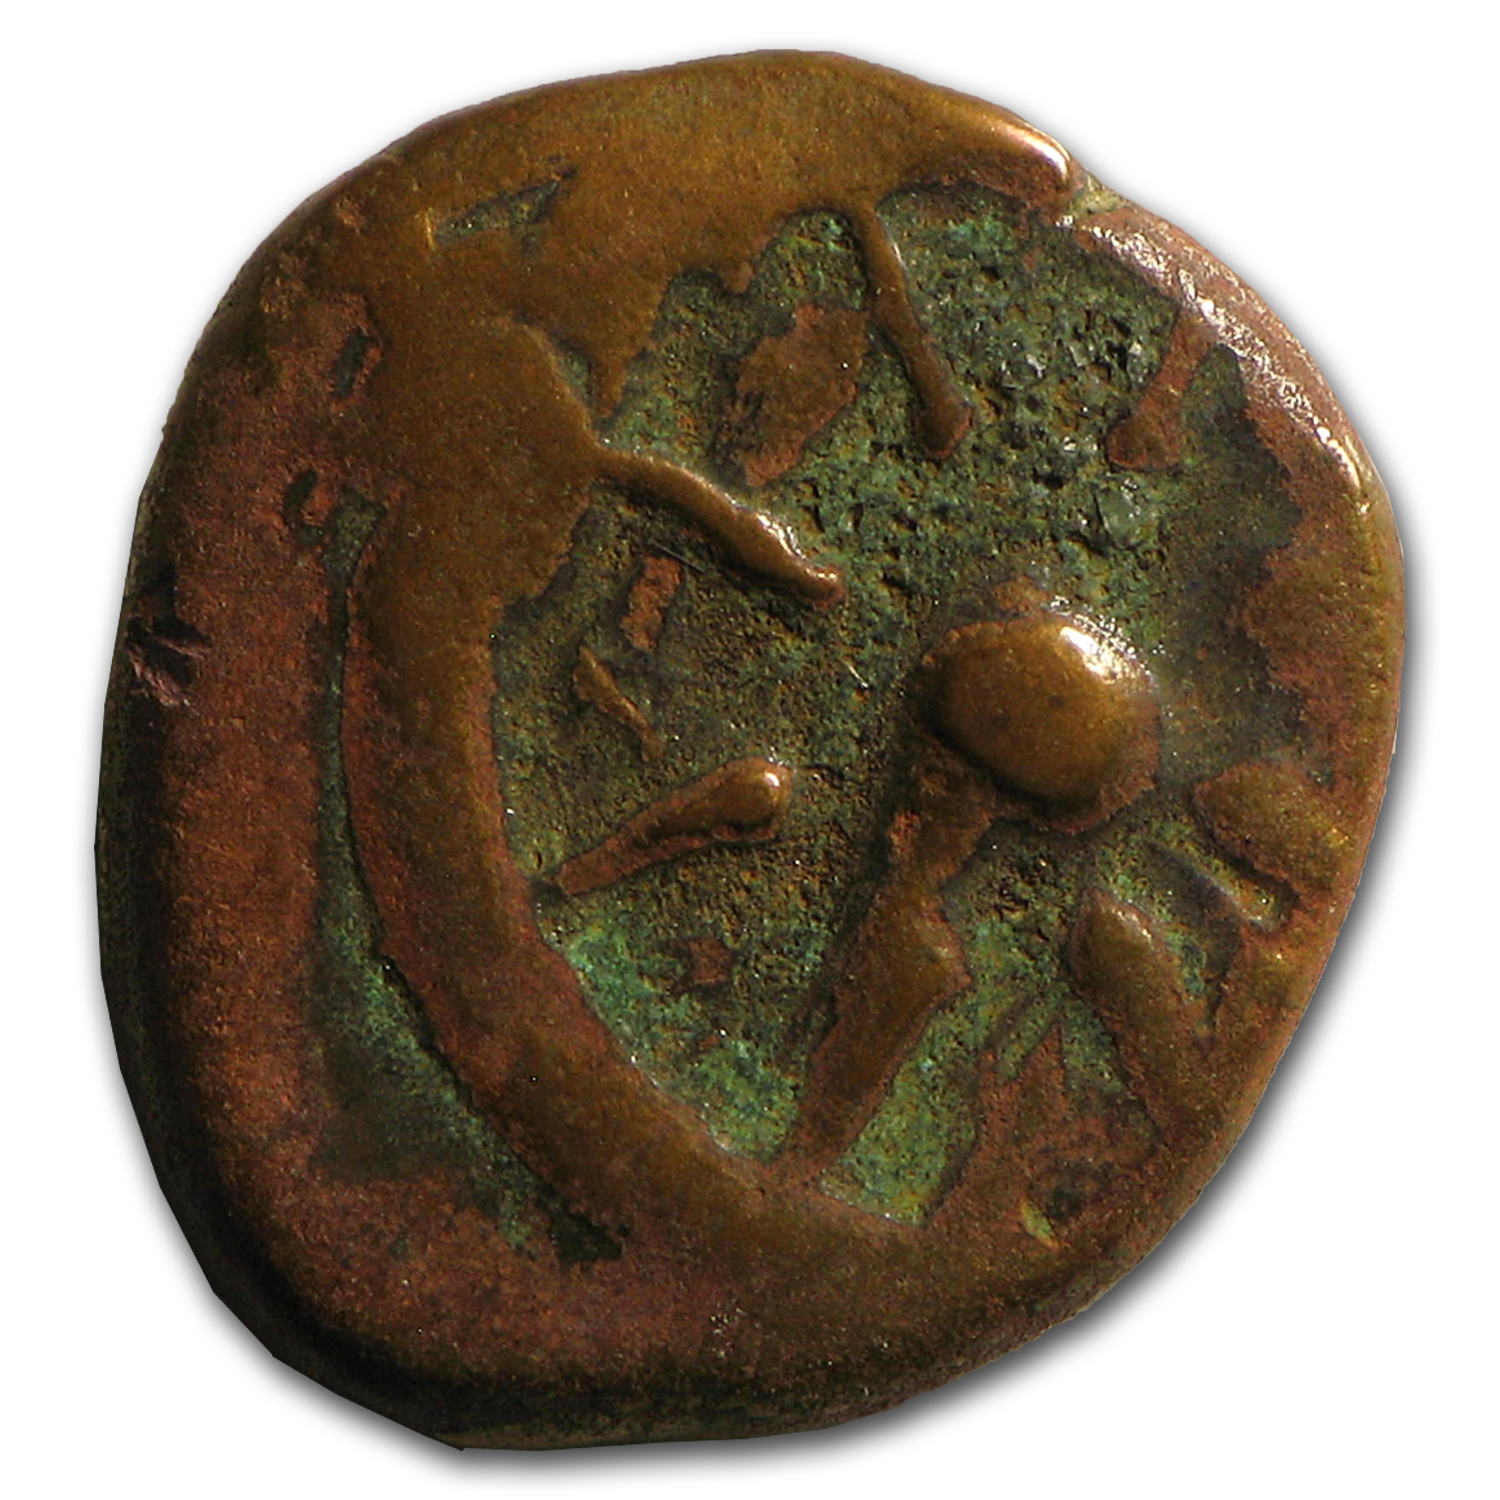 Widow's Mite In Deluxe Wooden Box (103-76 BC)